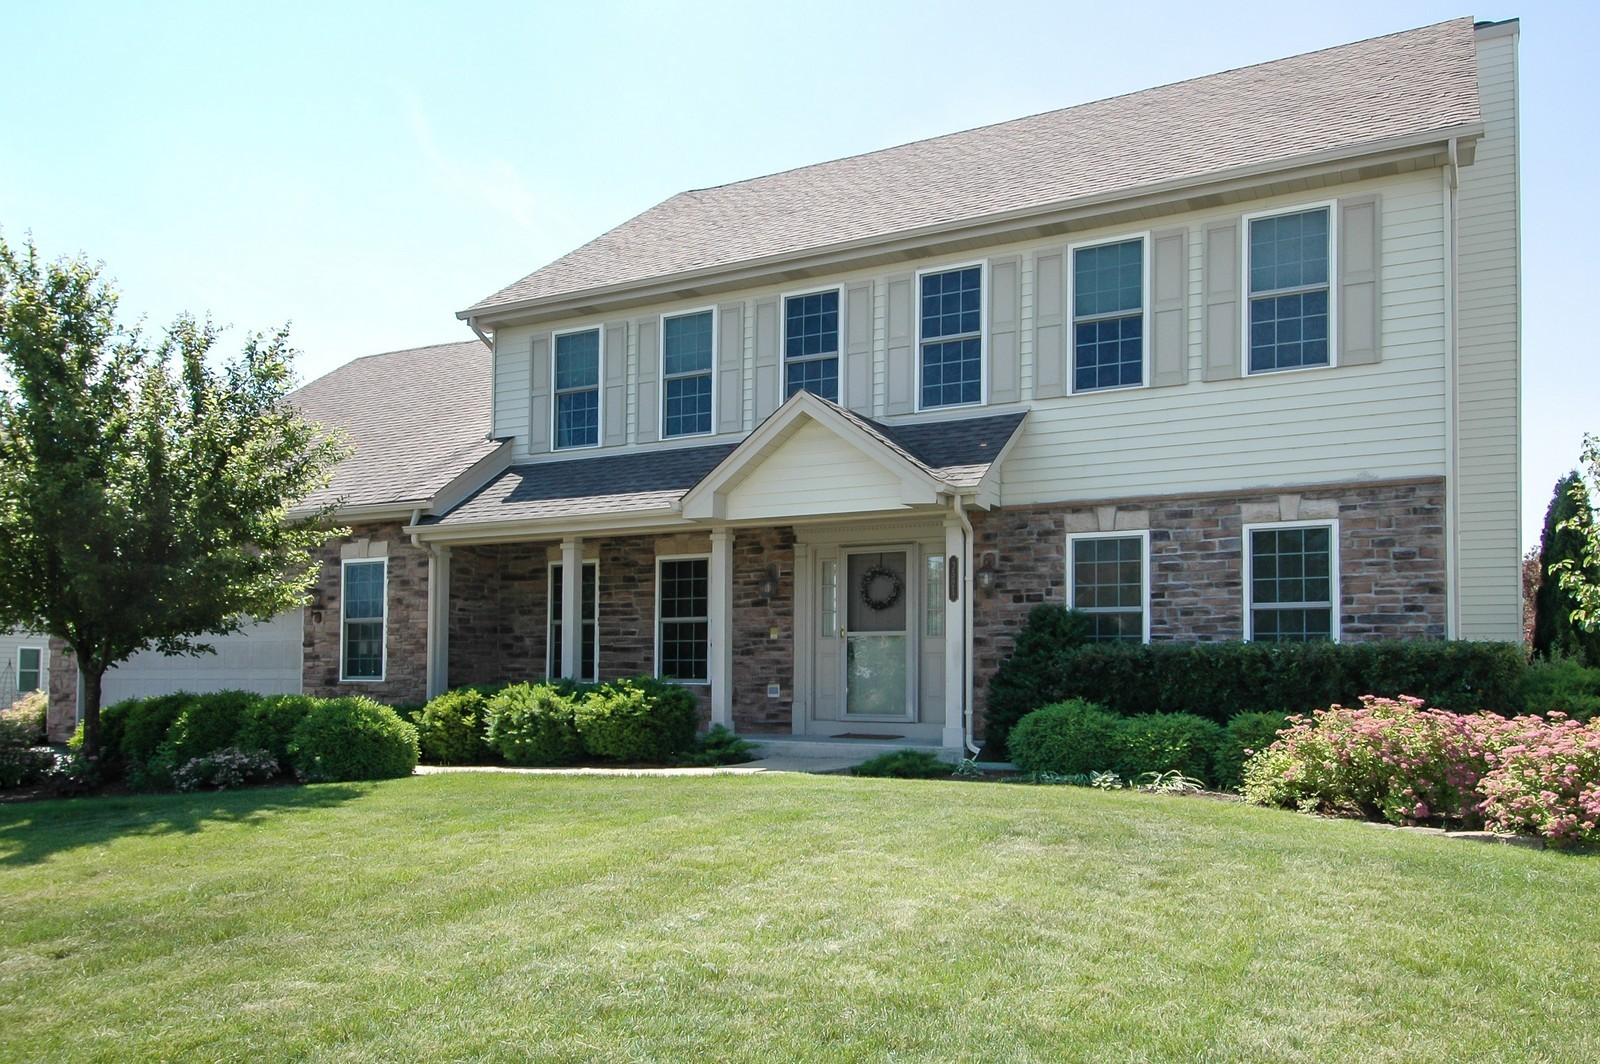 Real Estate Photography - 3521 Buckboard Dr, Algonquin, IL, 60102 - Front View